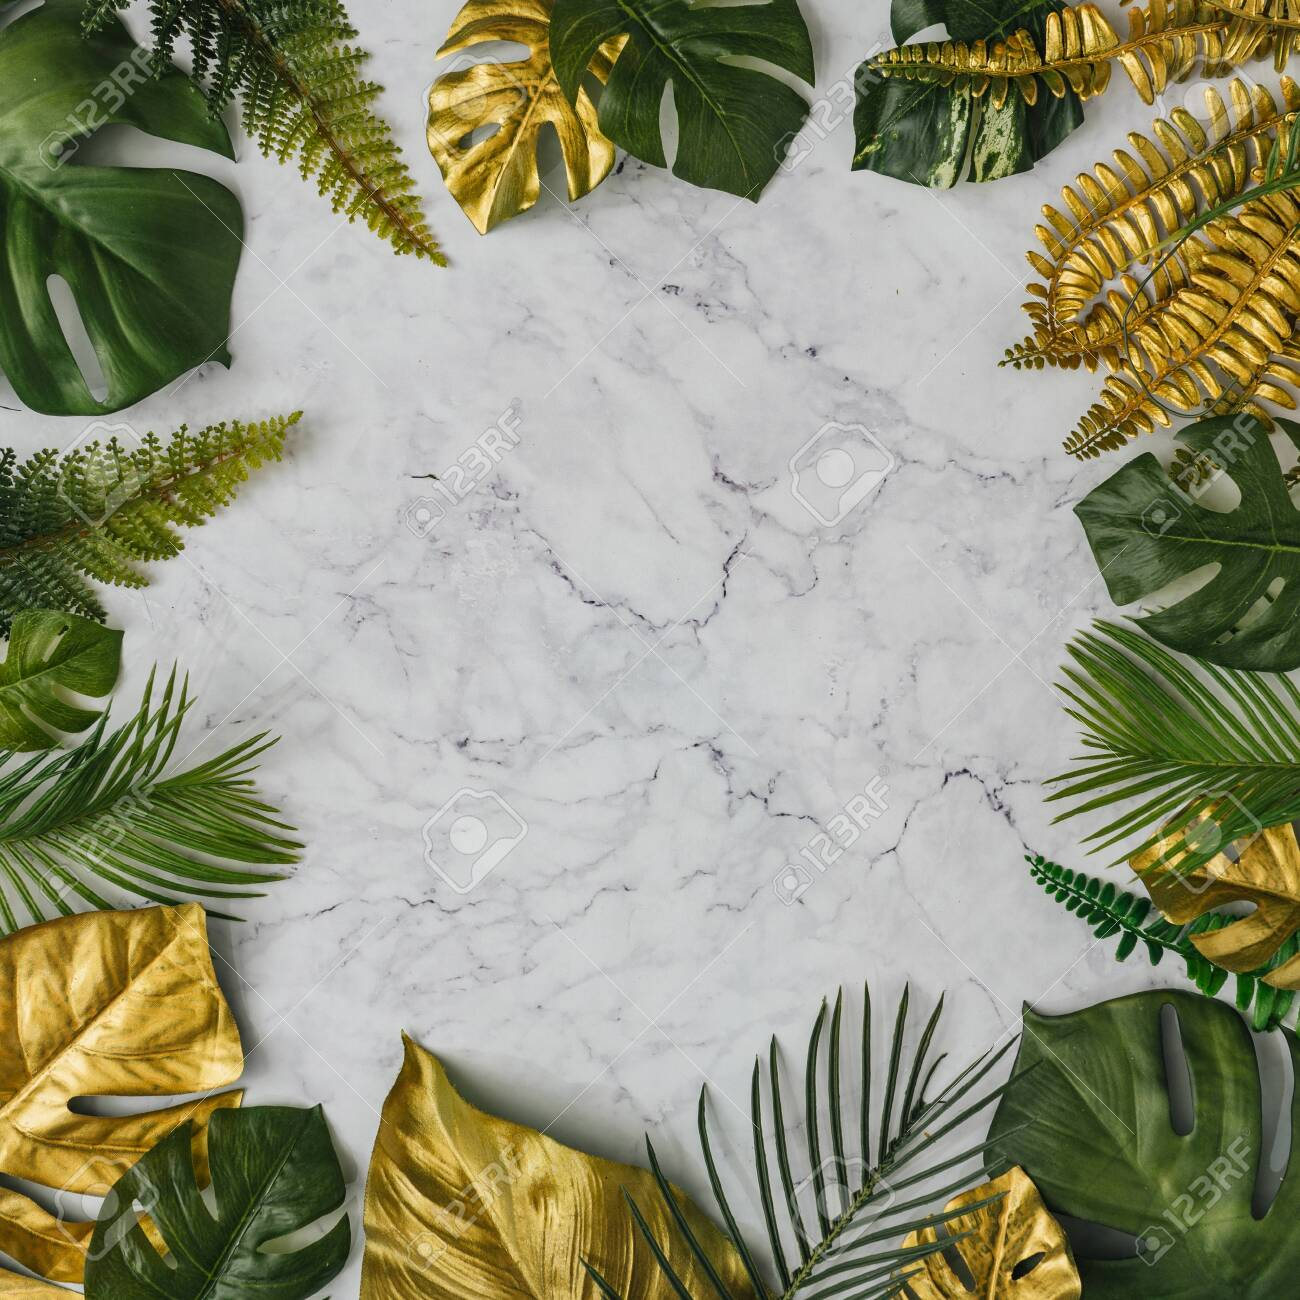 Top View Of Green And Gold Tropical Leaves On White Marble Background Stock Photo Picture And Royalty Free Image Image 127507043 66,462 tropical leaves premium high res photos. top view of green and gold tropical leaves on white marble background